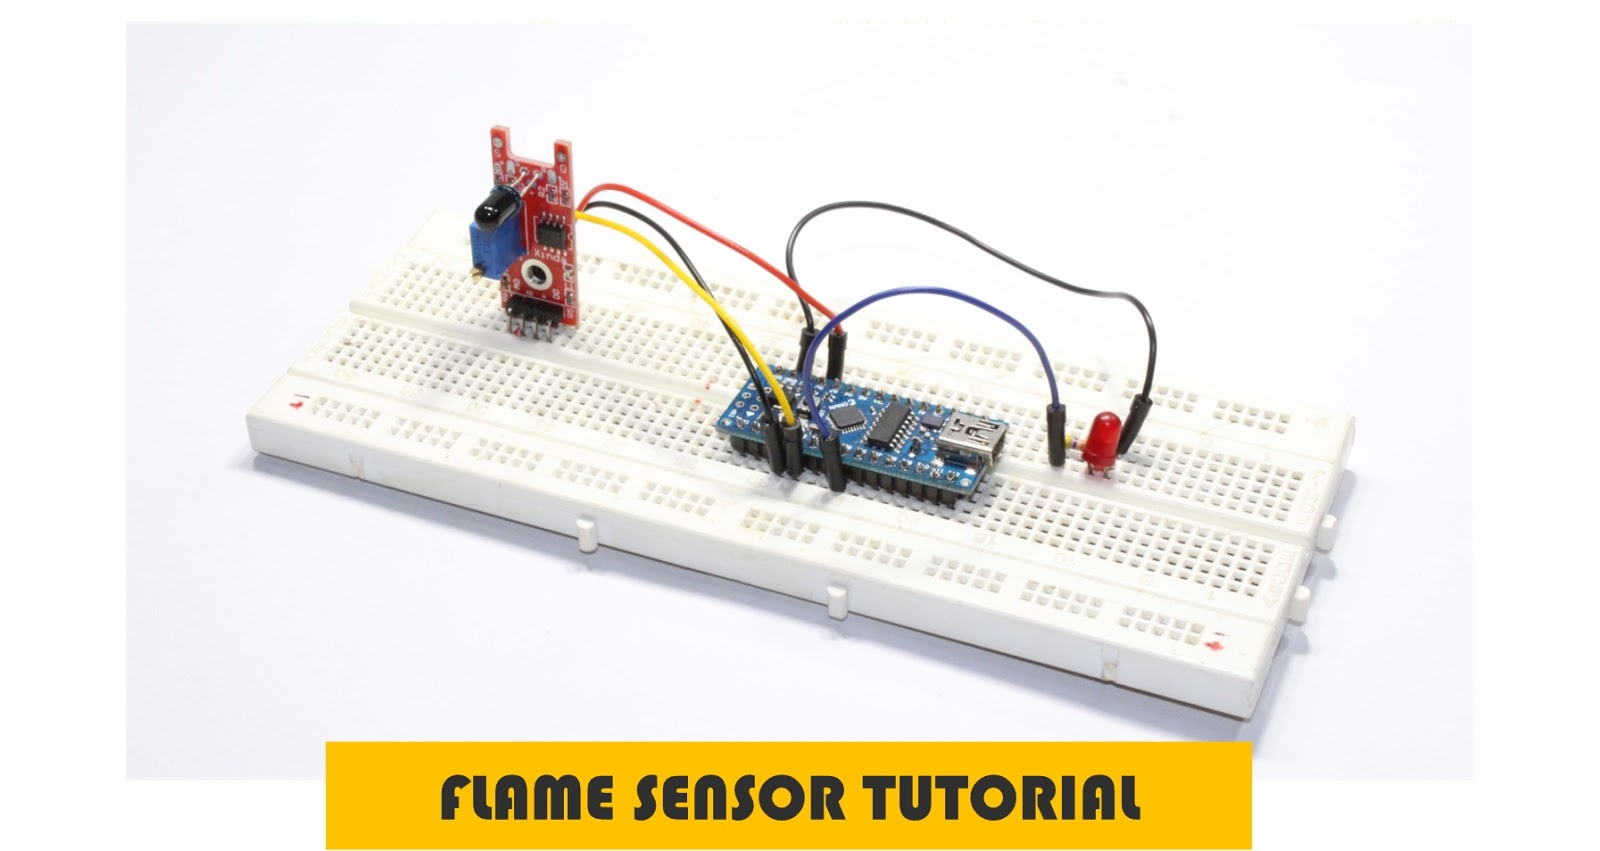 Robotech Maker: How to use flame sensor - Simple tutorial